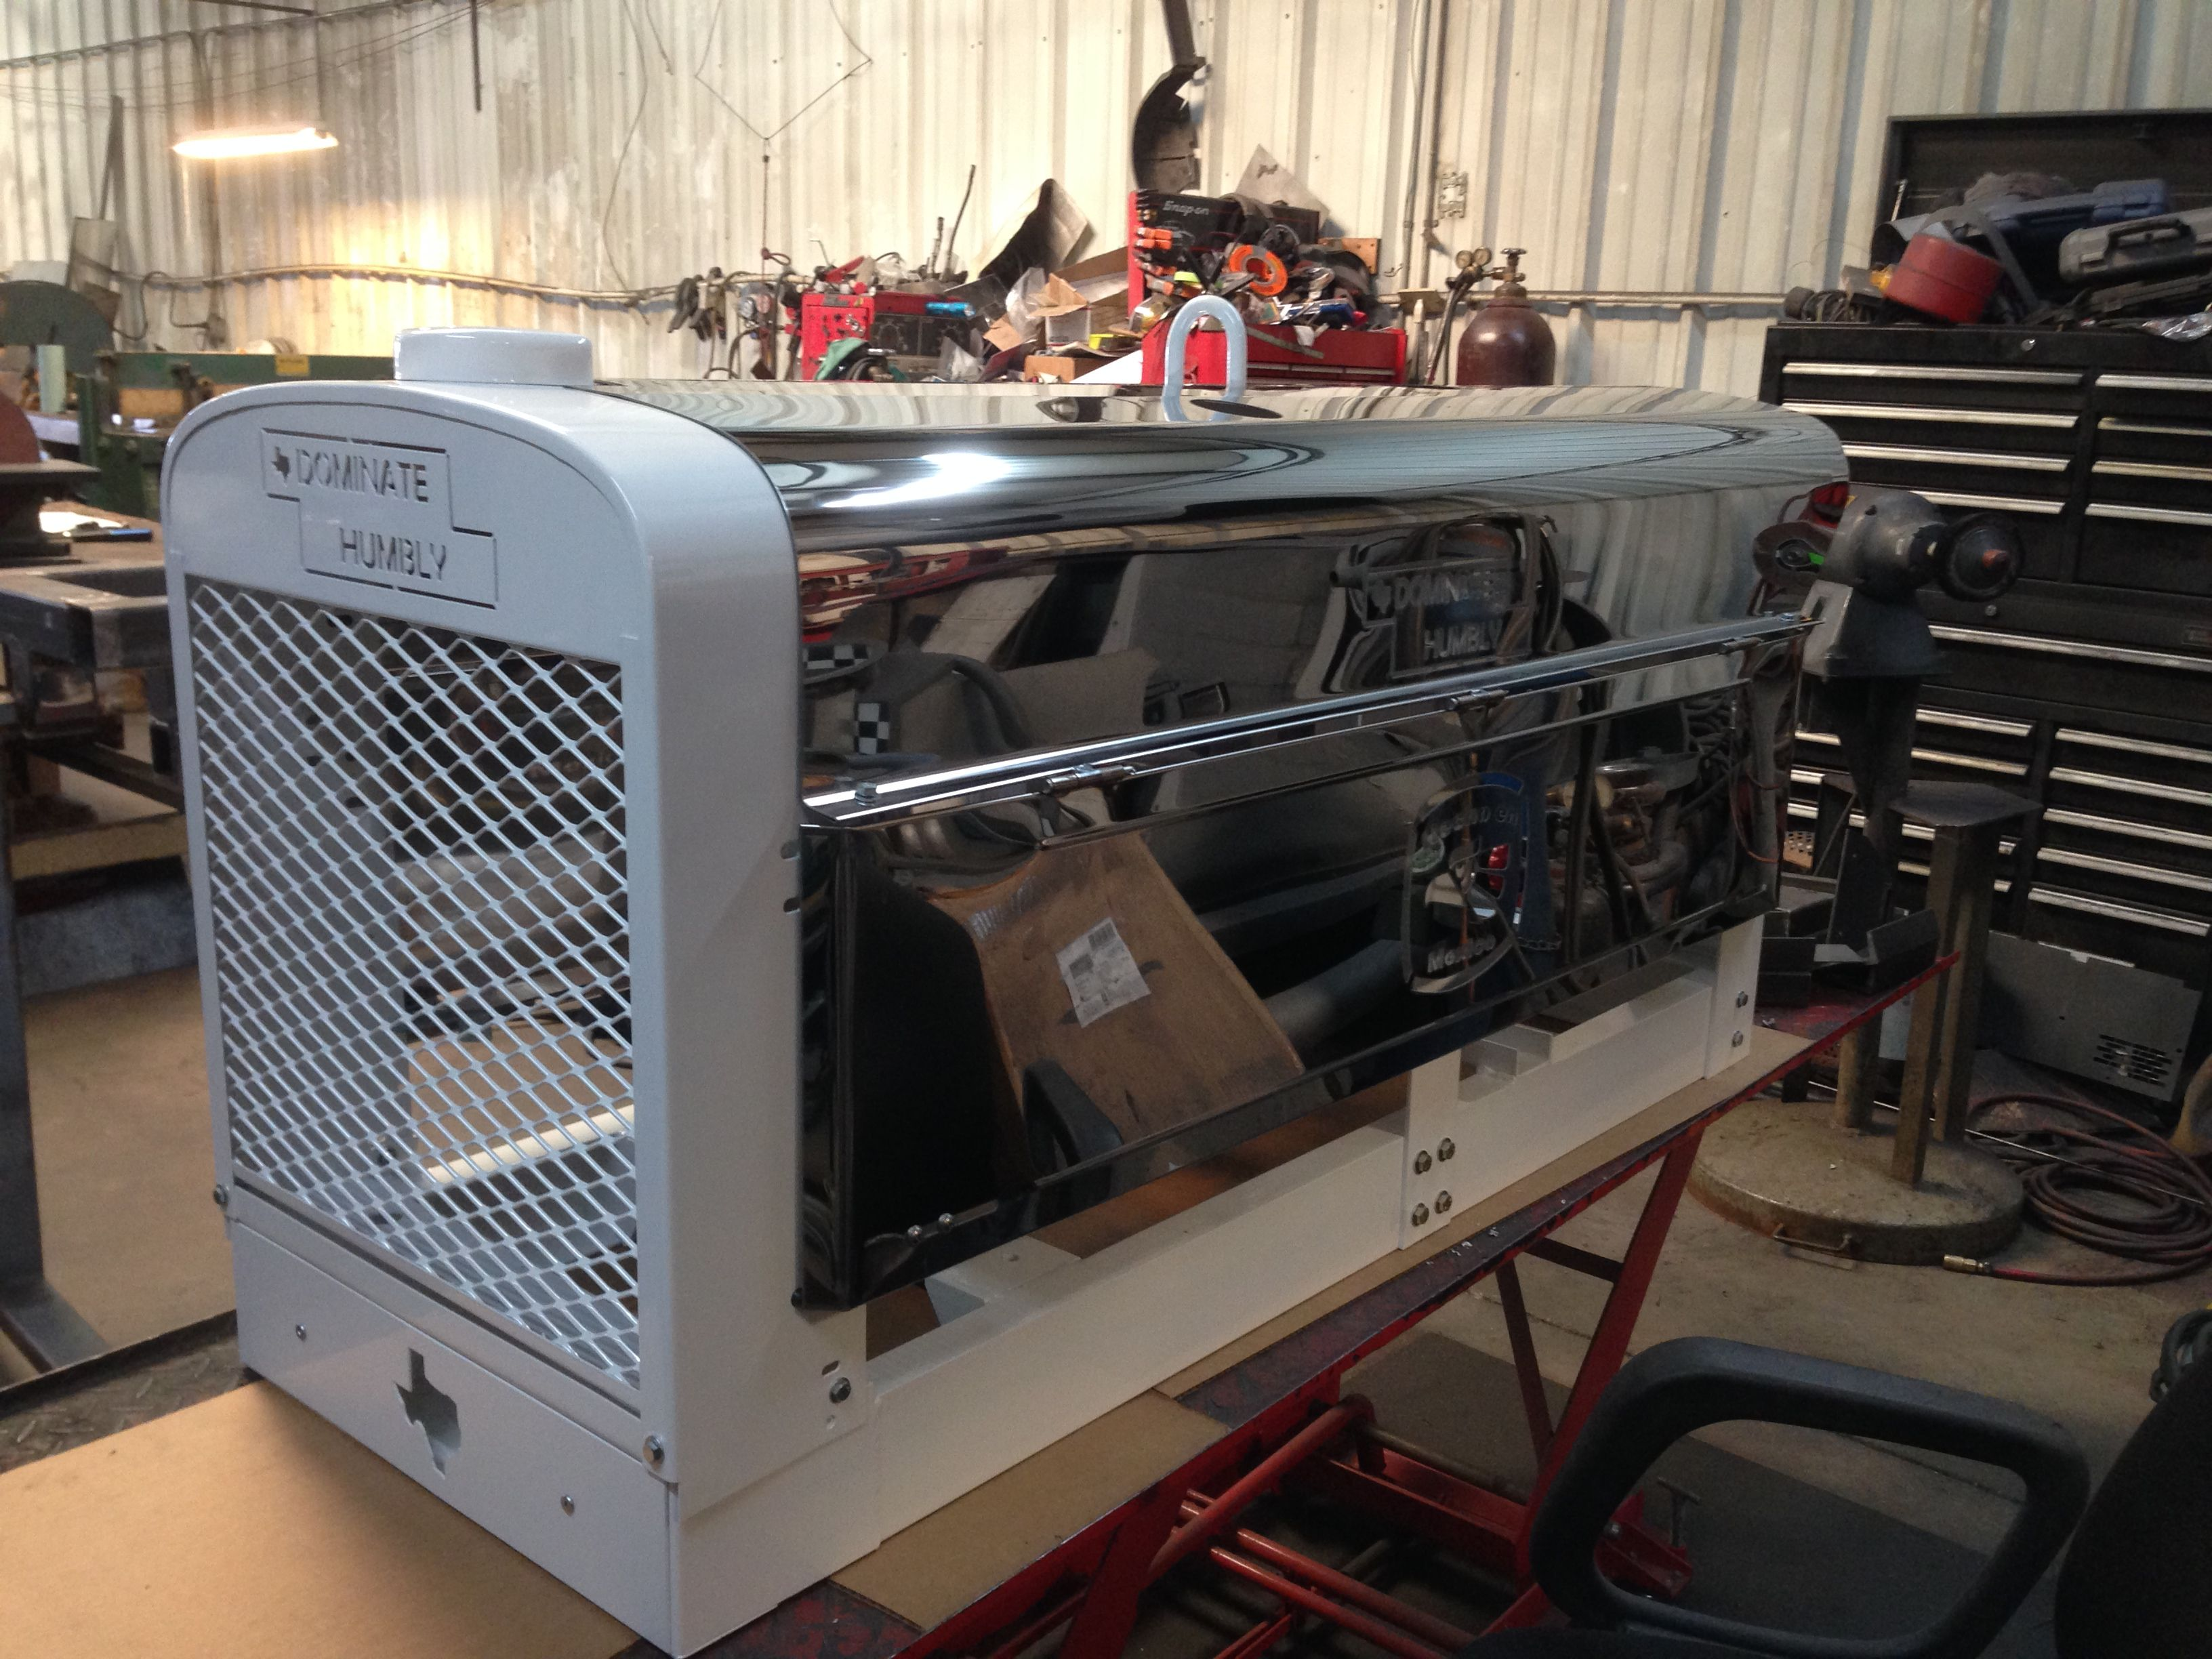 10 Chopped 300he Chassis Welding Rigs Lincoln Welders Welding Beds